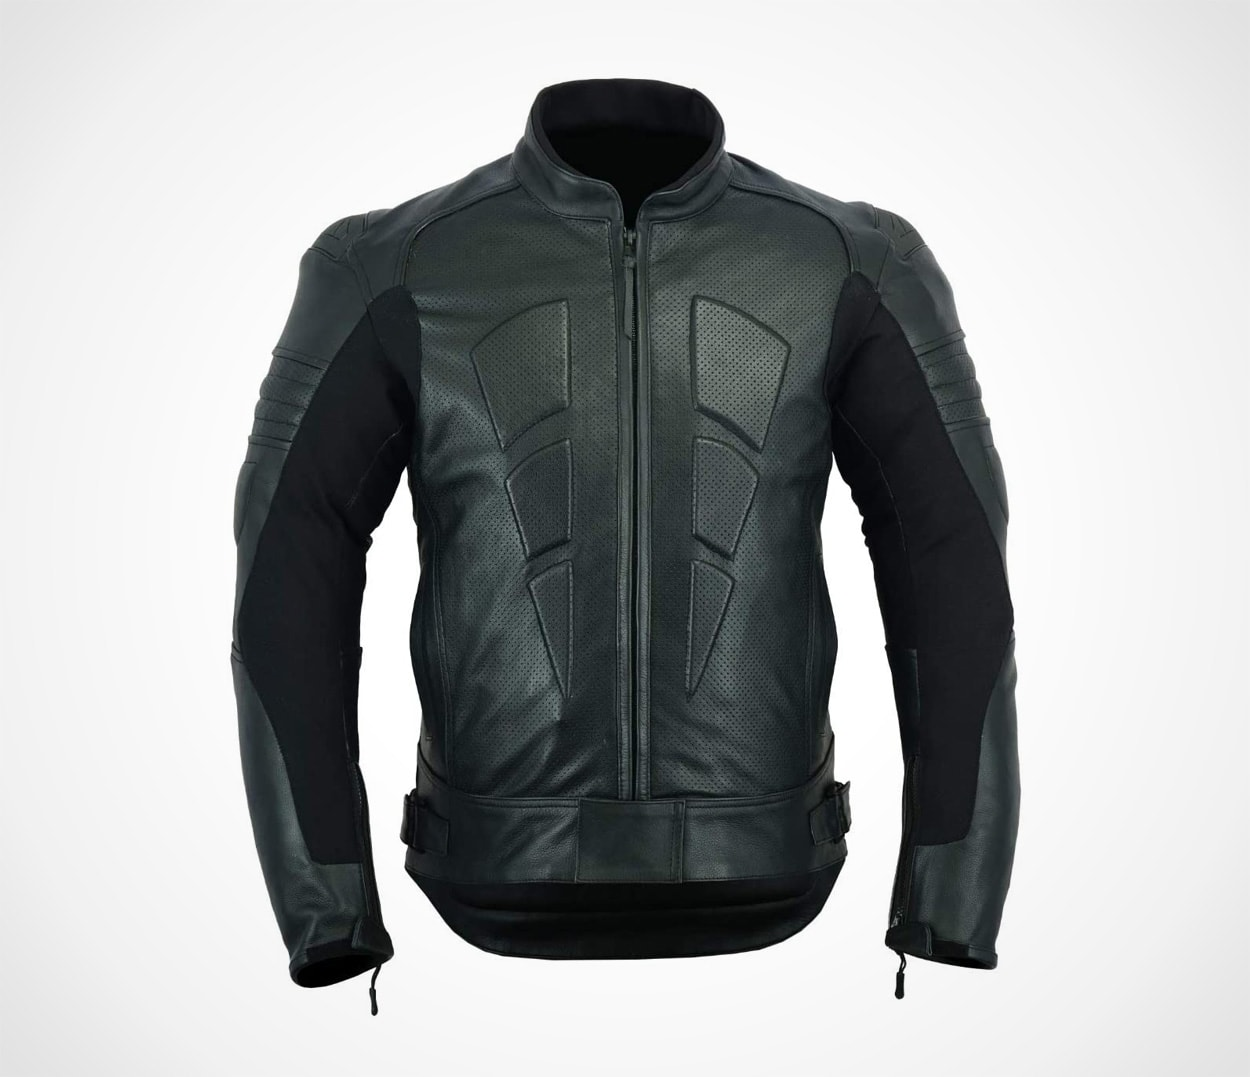 Men's Perforated Motorcycle Leather Jacket With External and Internal Armour